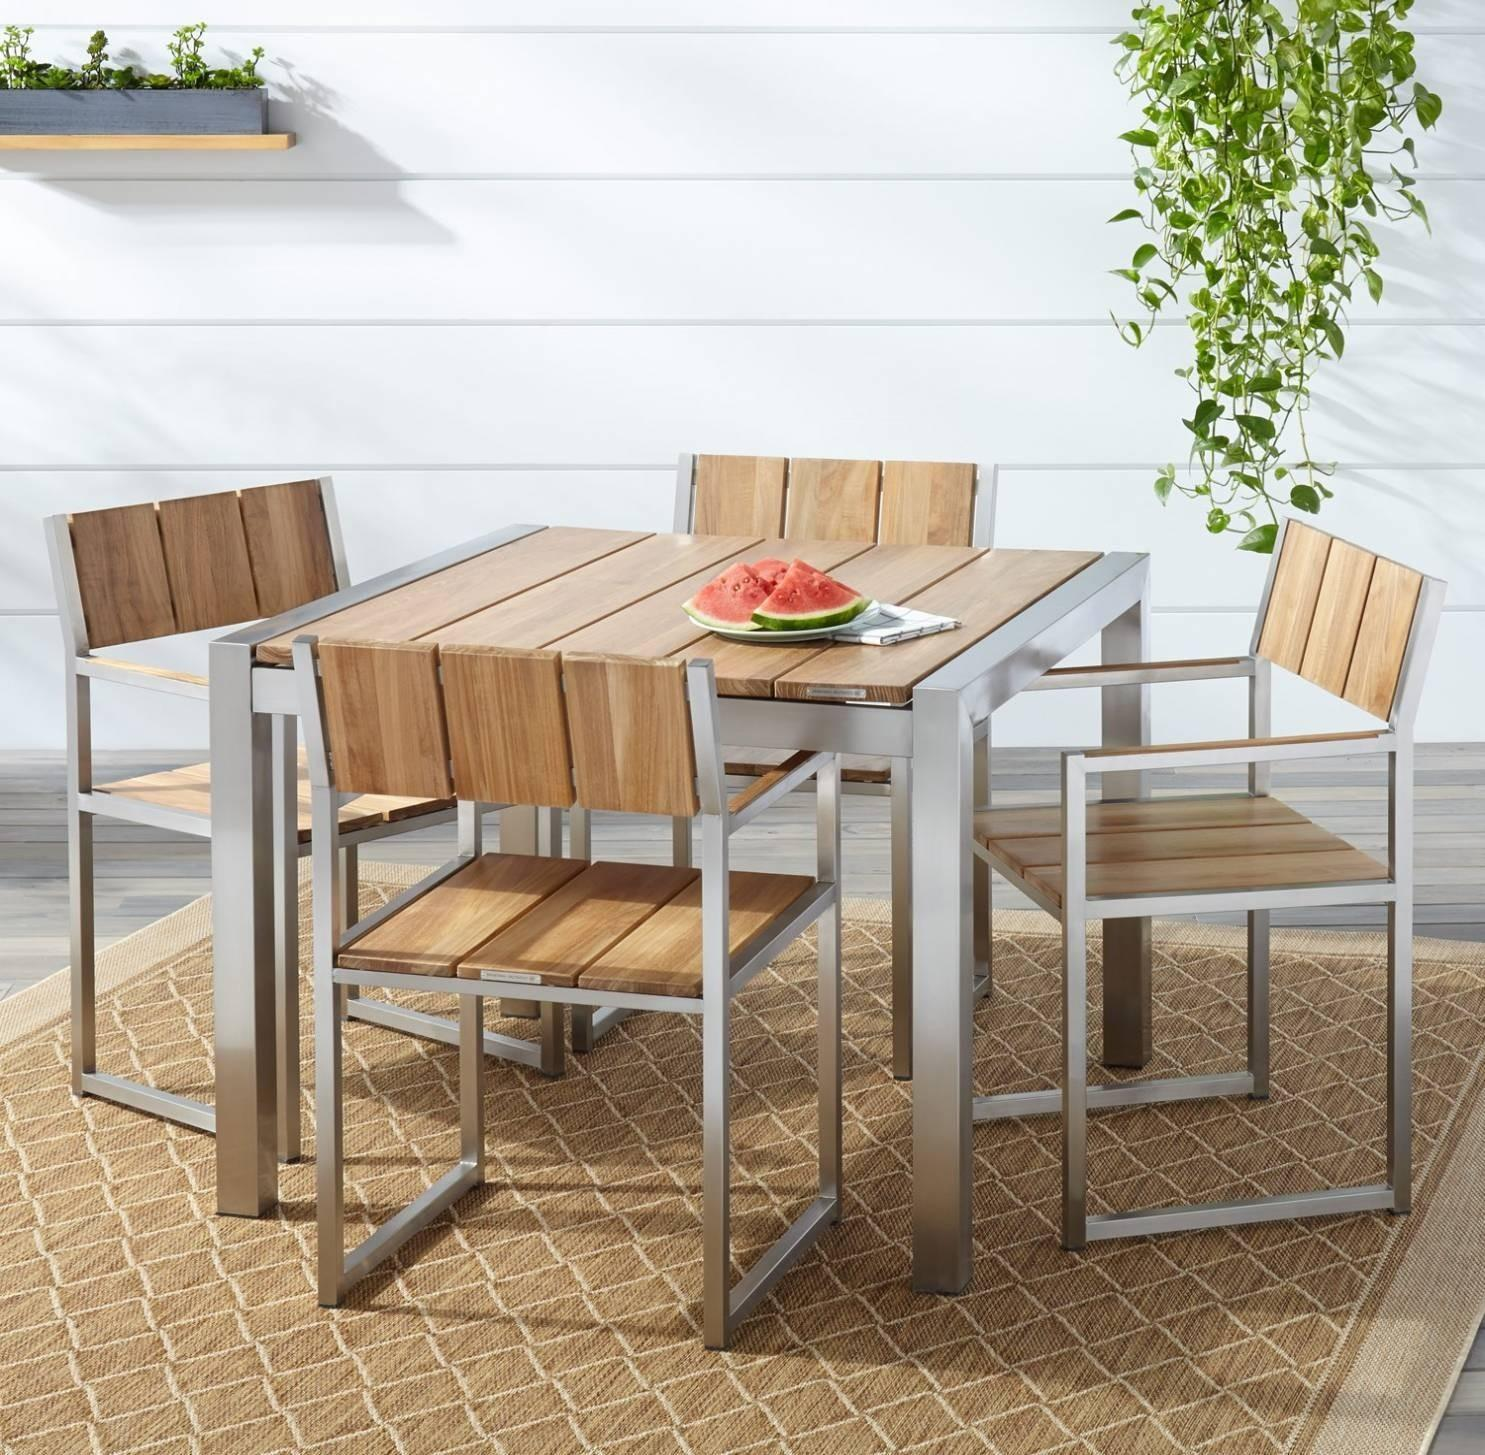 Ideas Outdoor Dining Table